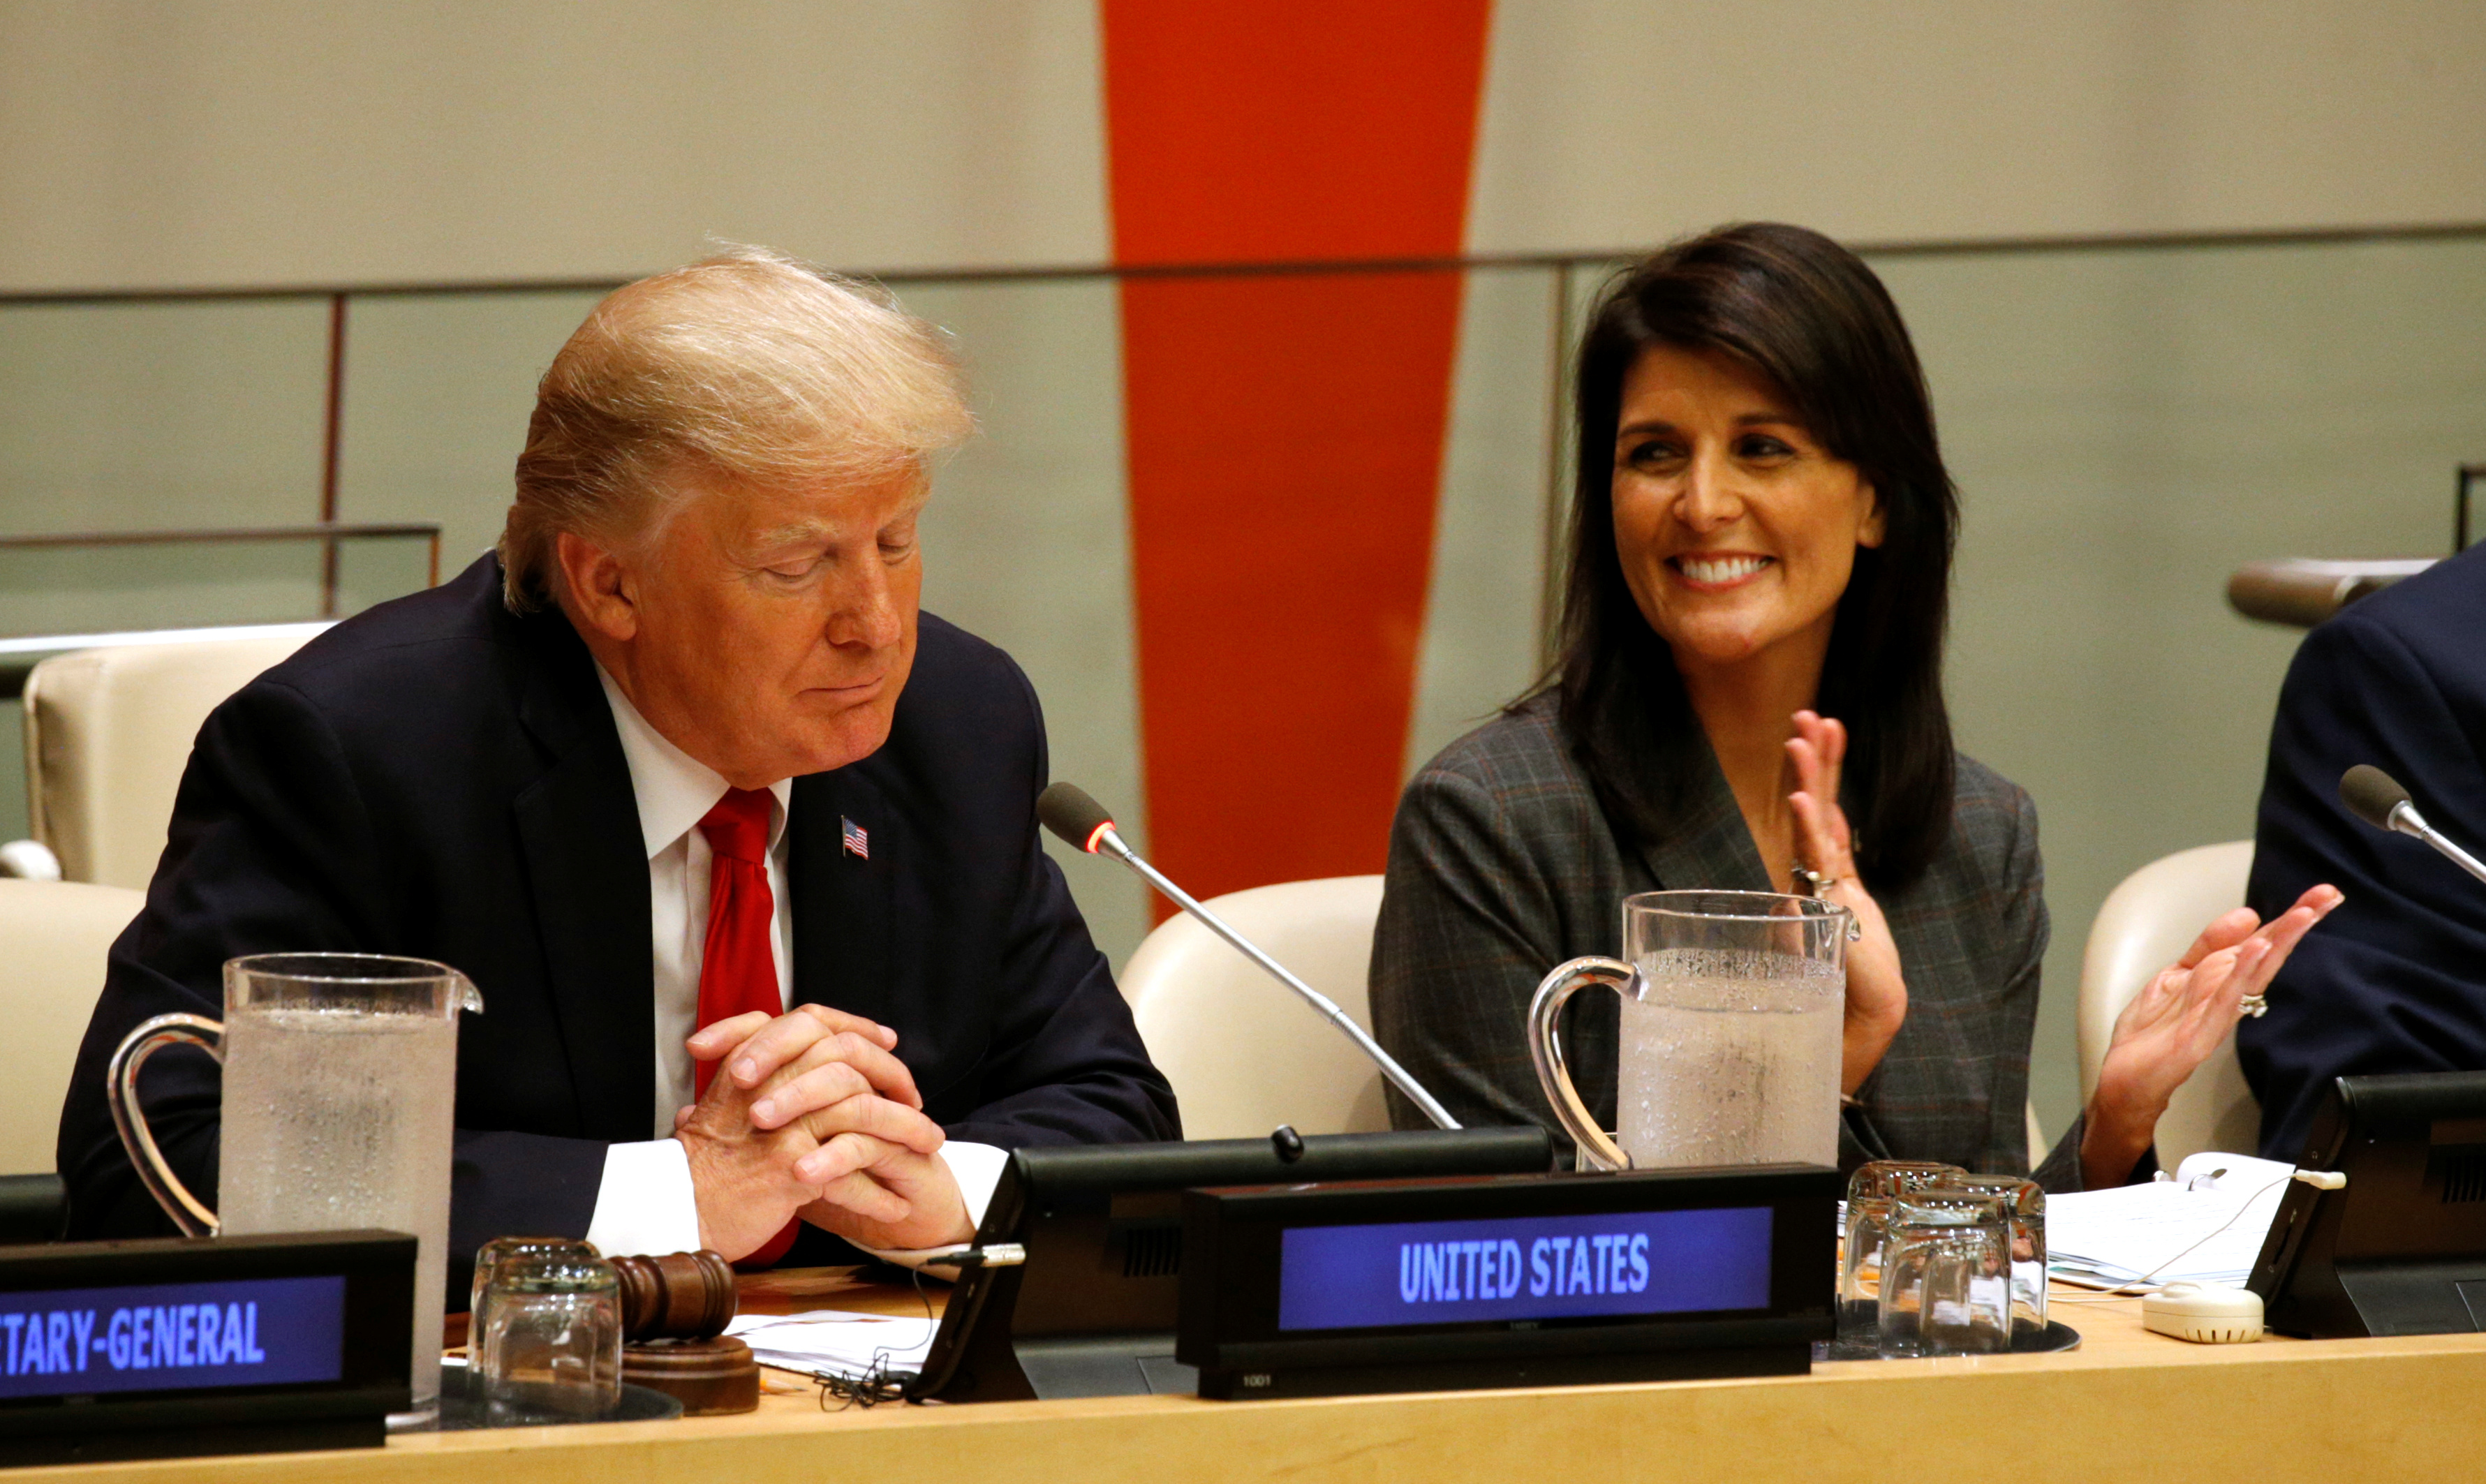 Trump to single out North Korea, Iran in first speech at U.N.